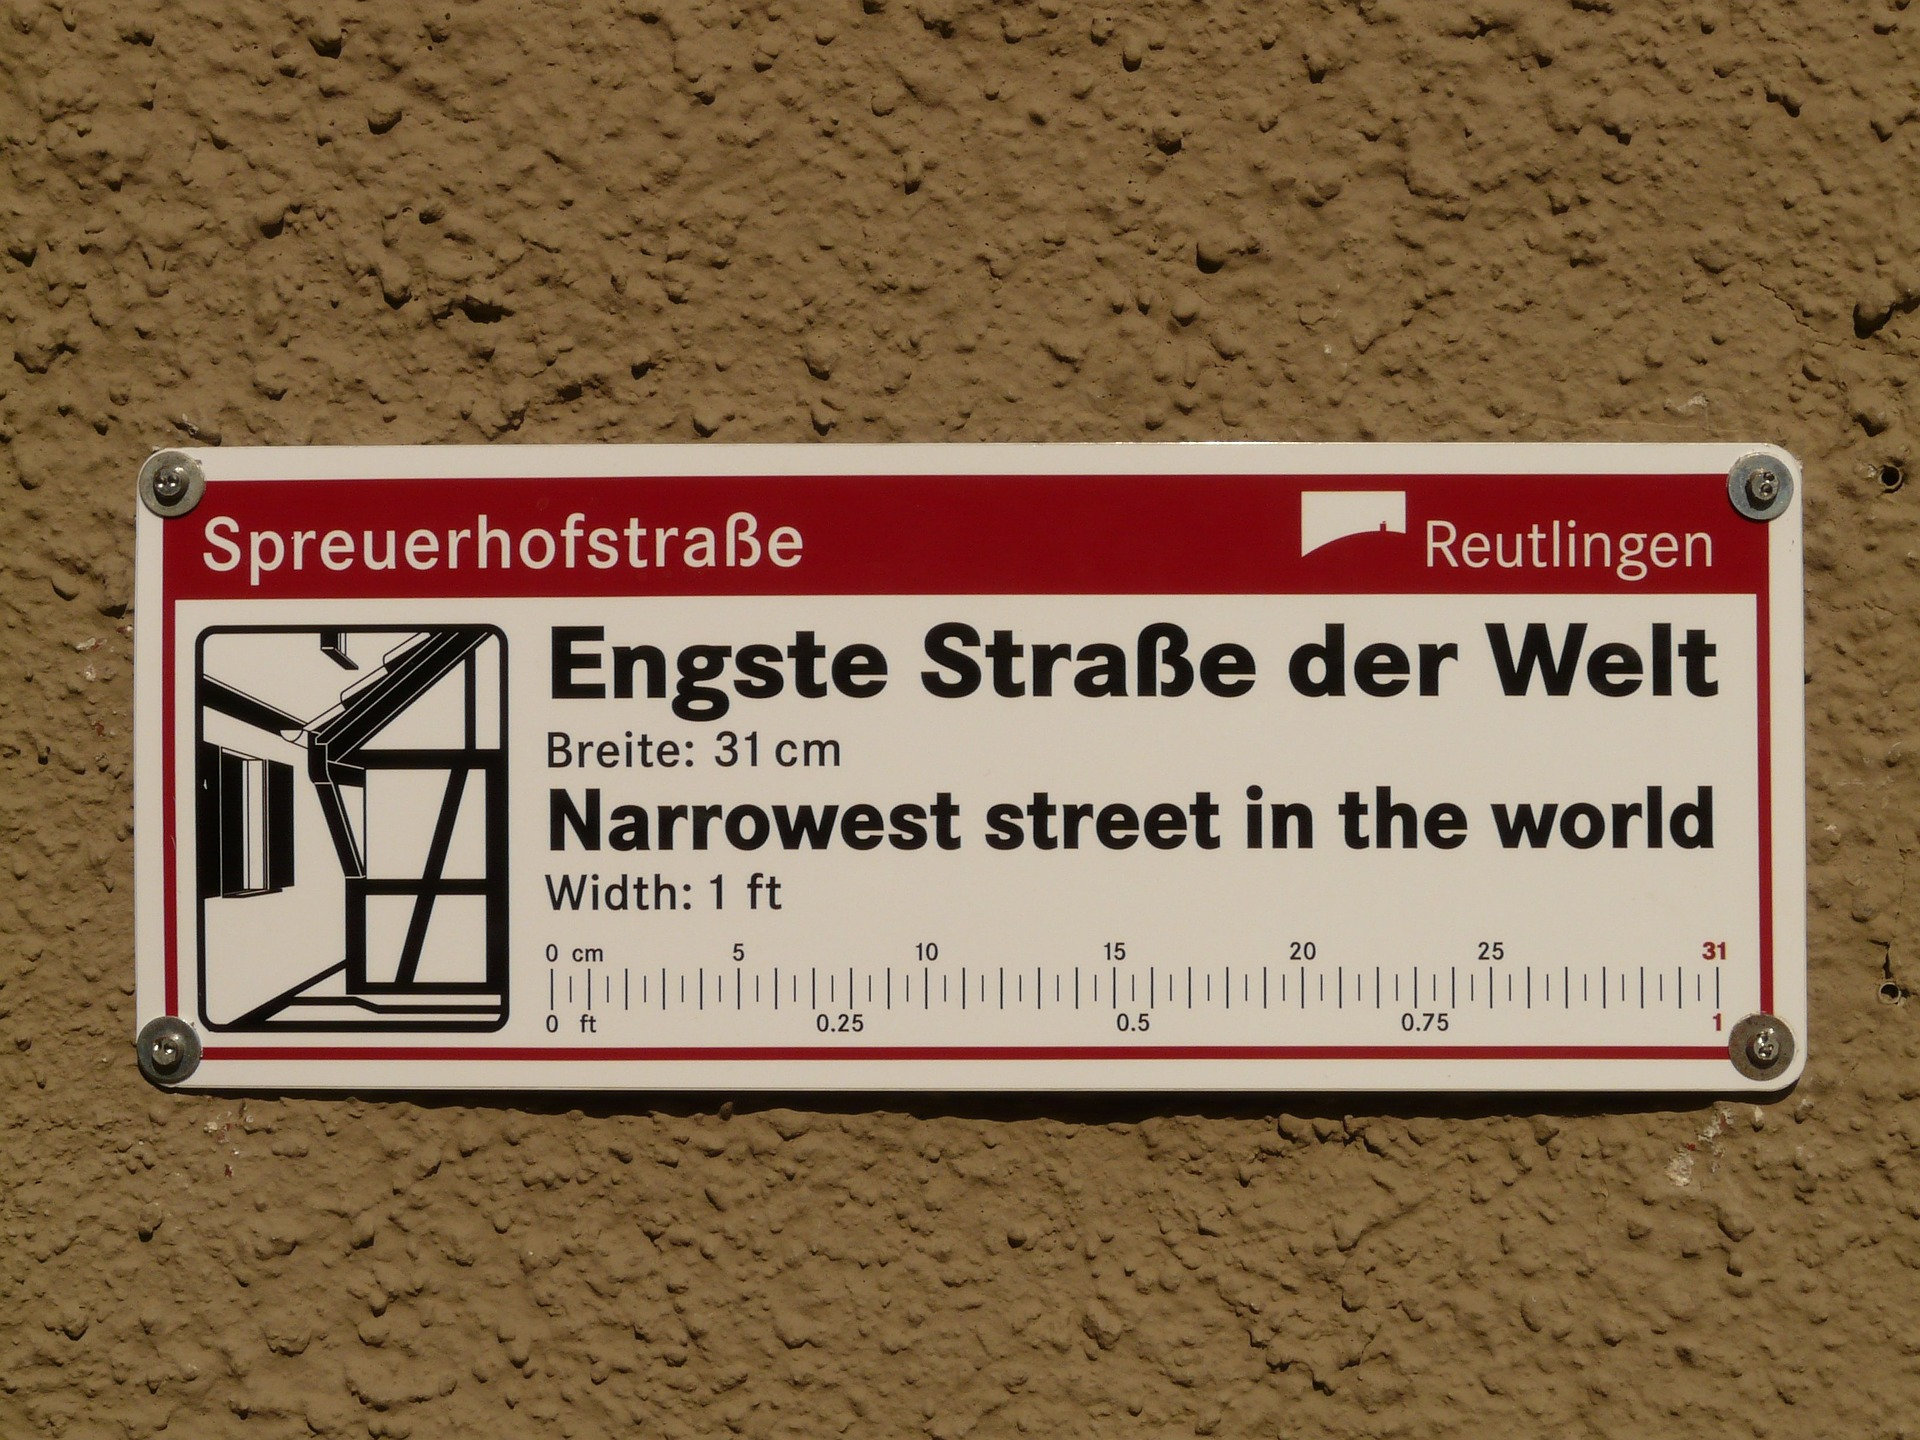 Narrowest street in the world sign